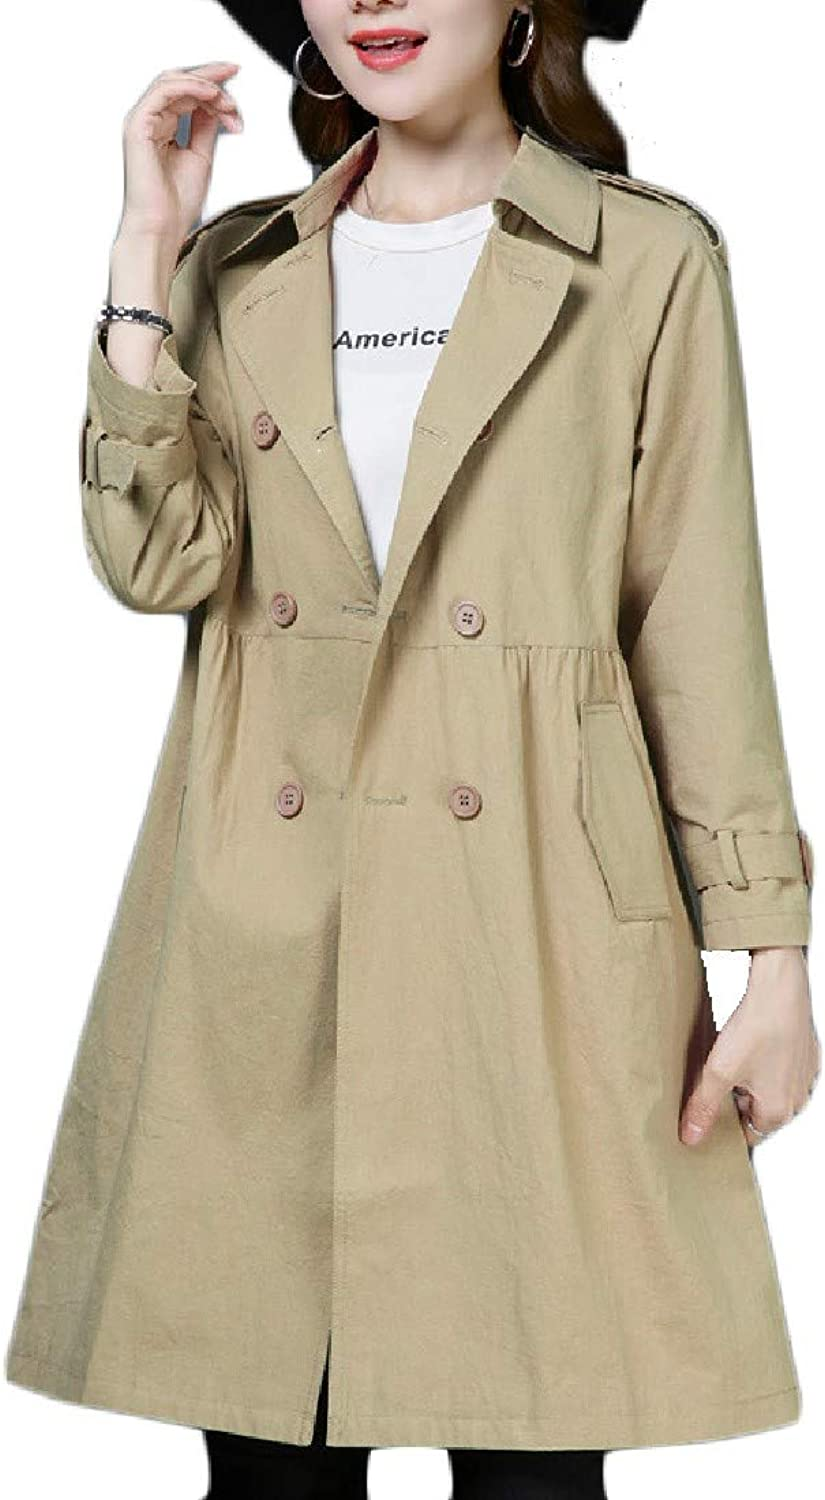 Abetteric Women's Smocked Waist Solid color Retro Jacket Overcoat